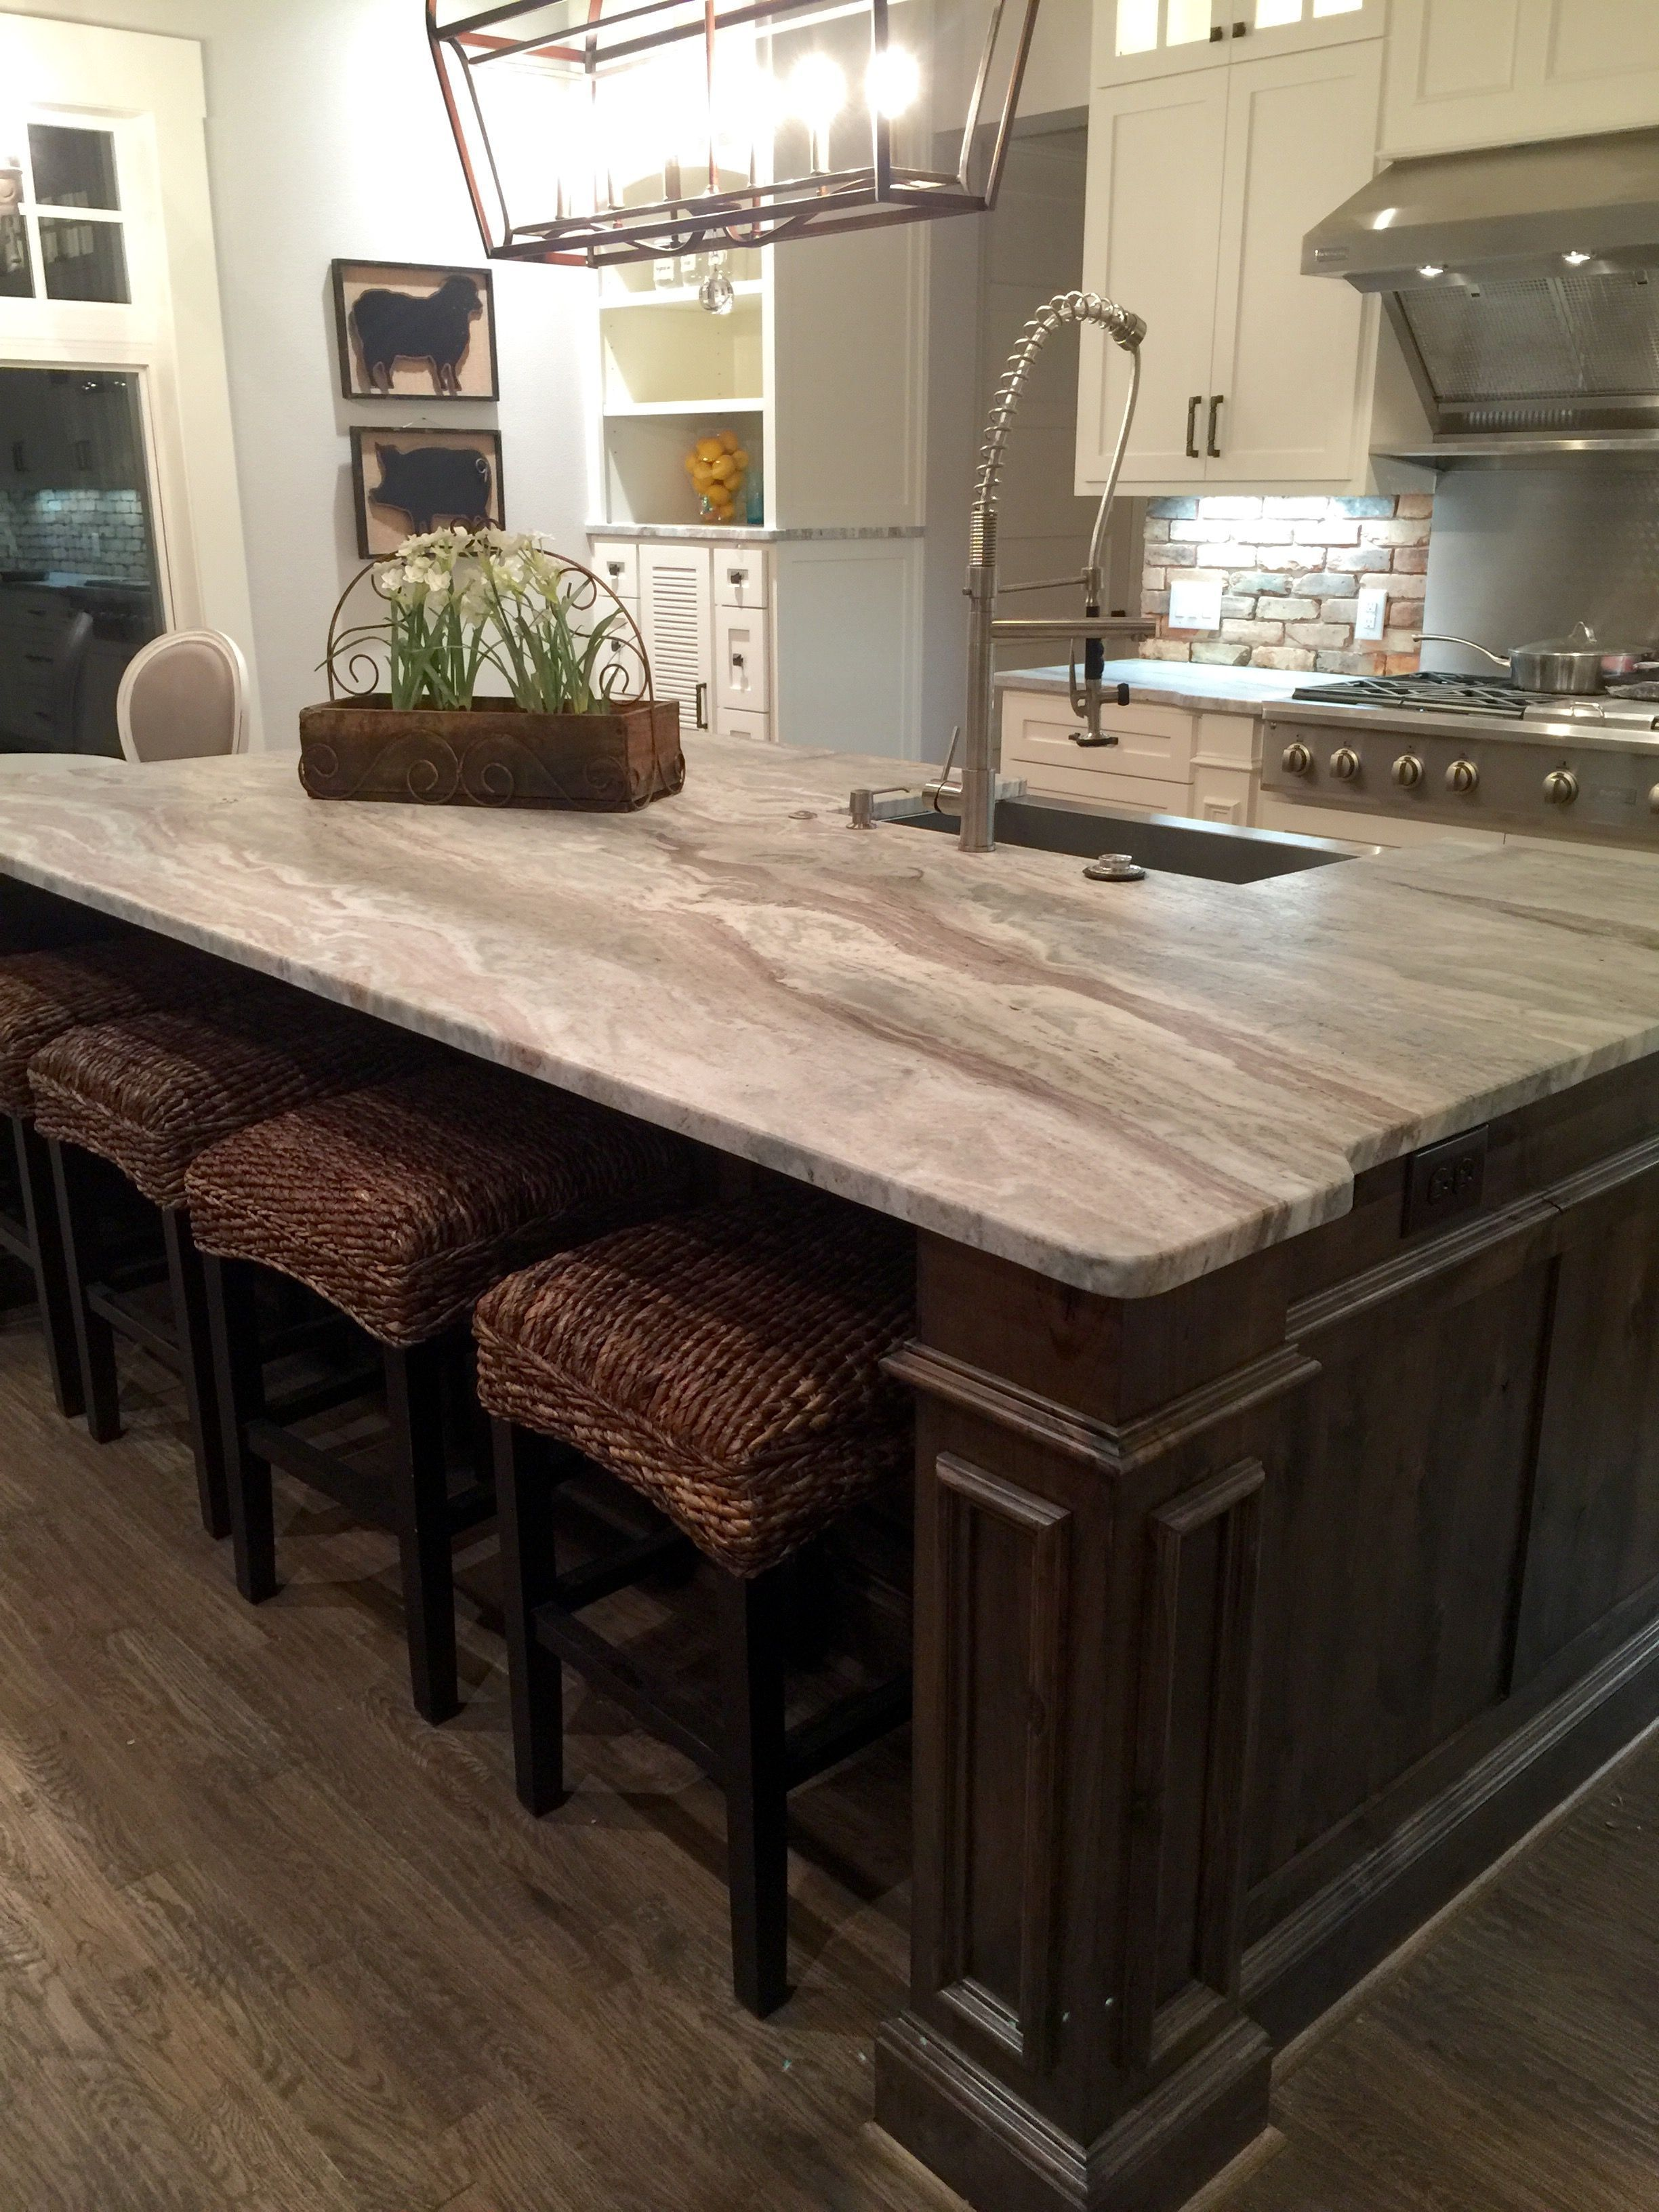 25 Stone Flooring Ideas With Pros And Cons: Dark Granite Countertops Pros And Cons